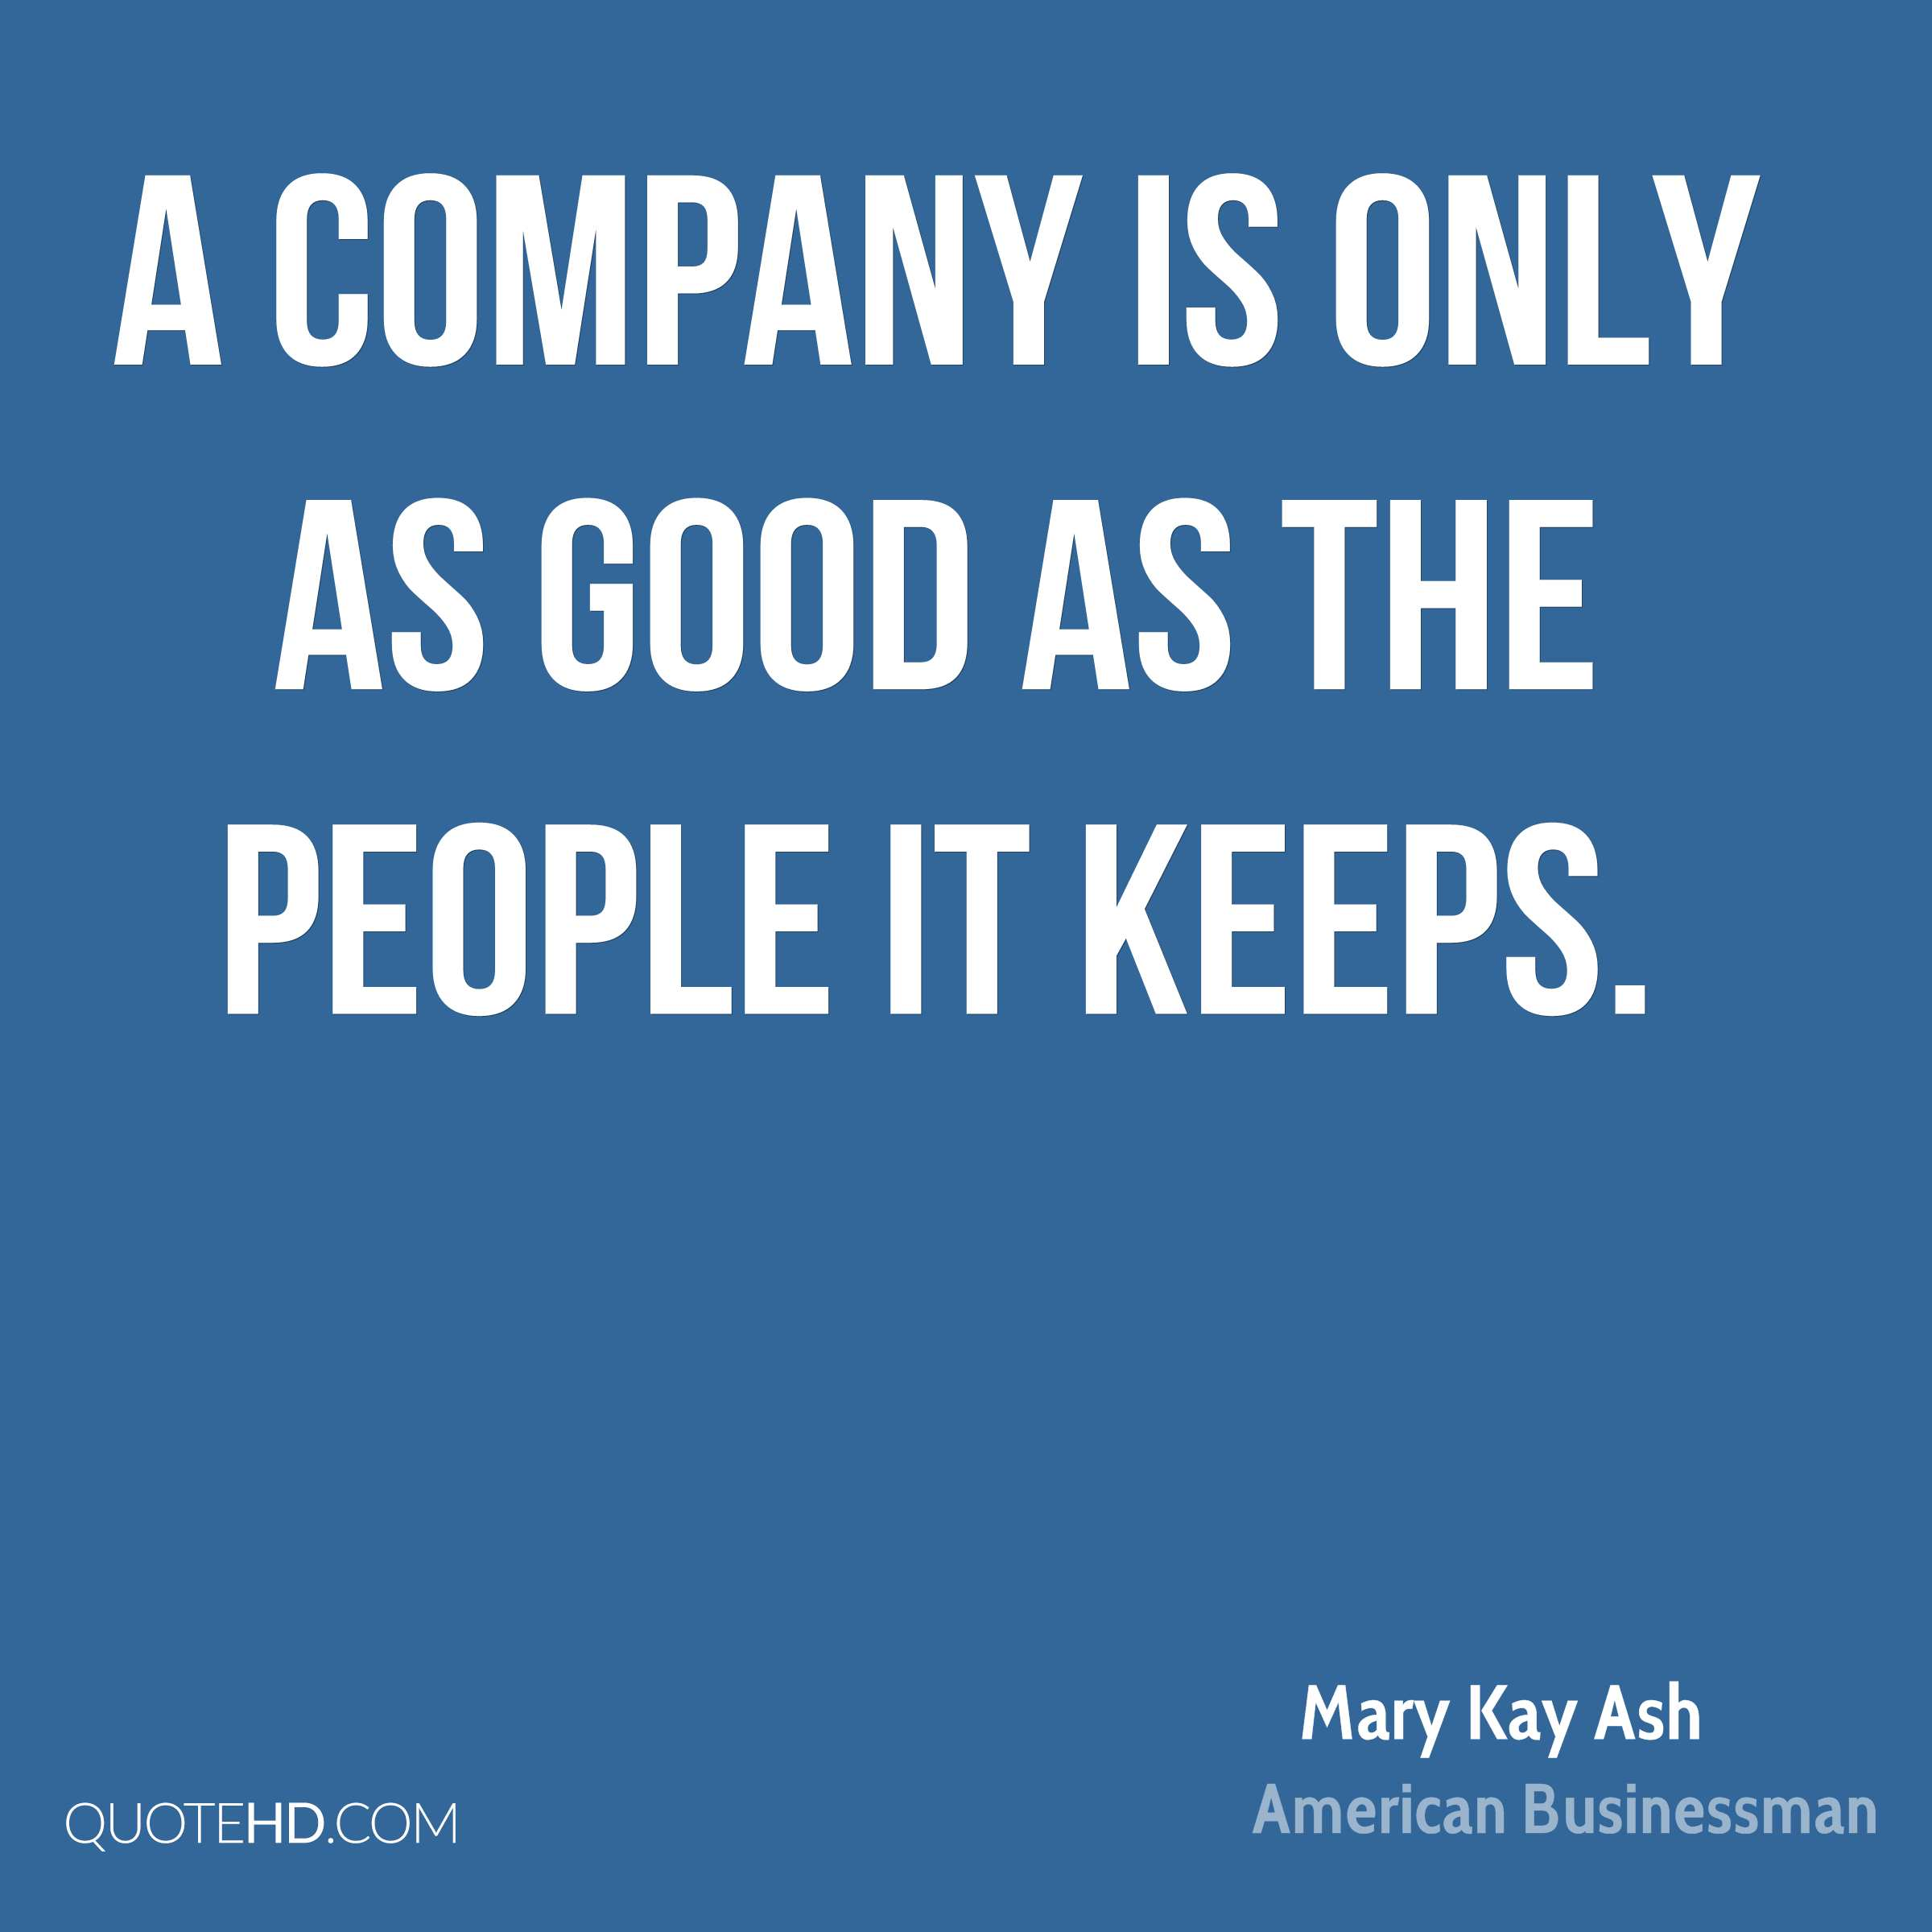 A company is only as good as the people it keeps.